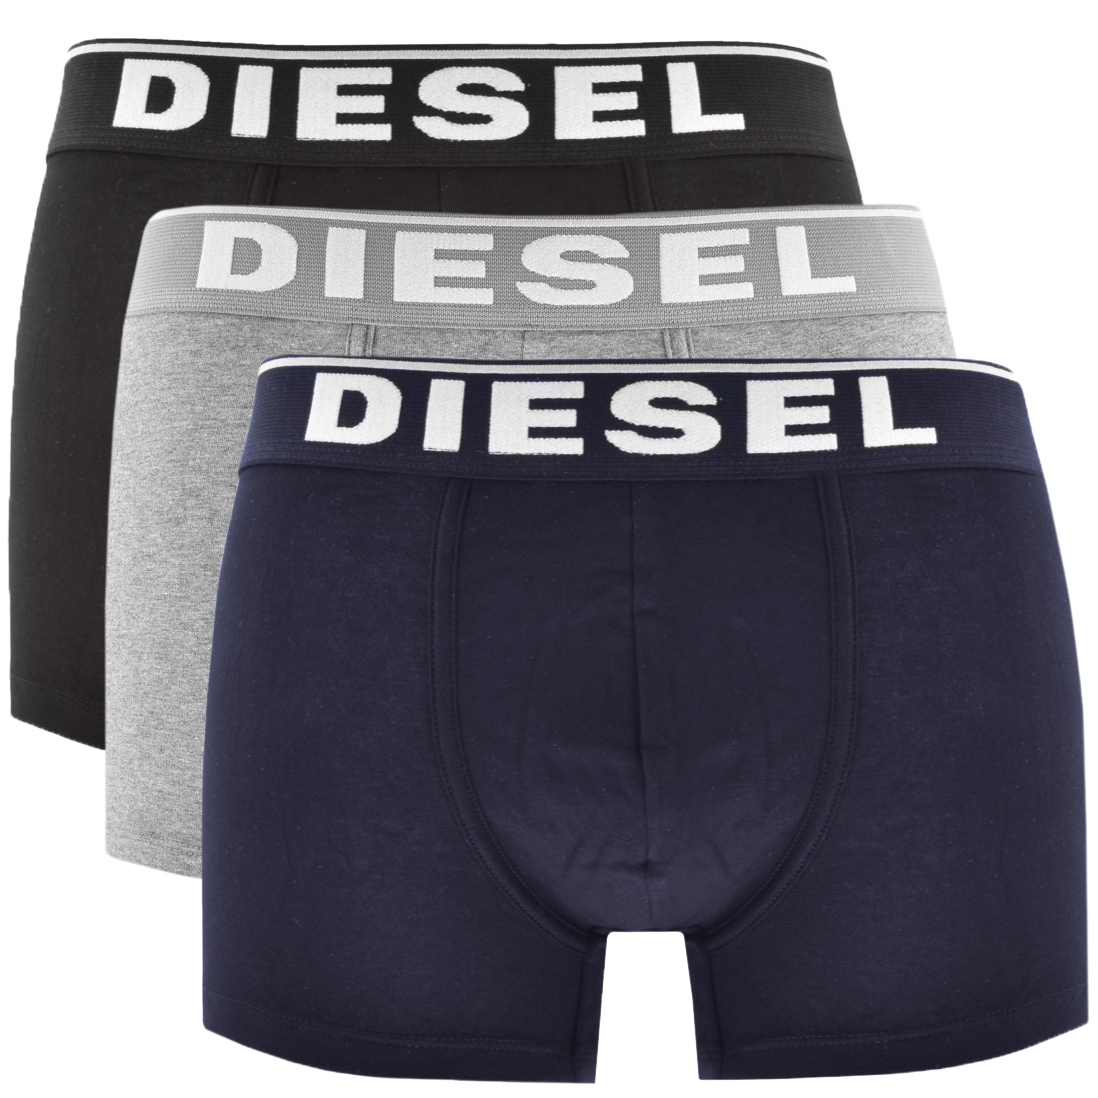 Diesel Underwear Damien 3 Pack Boxer Shorts Grey